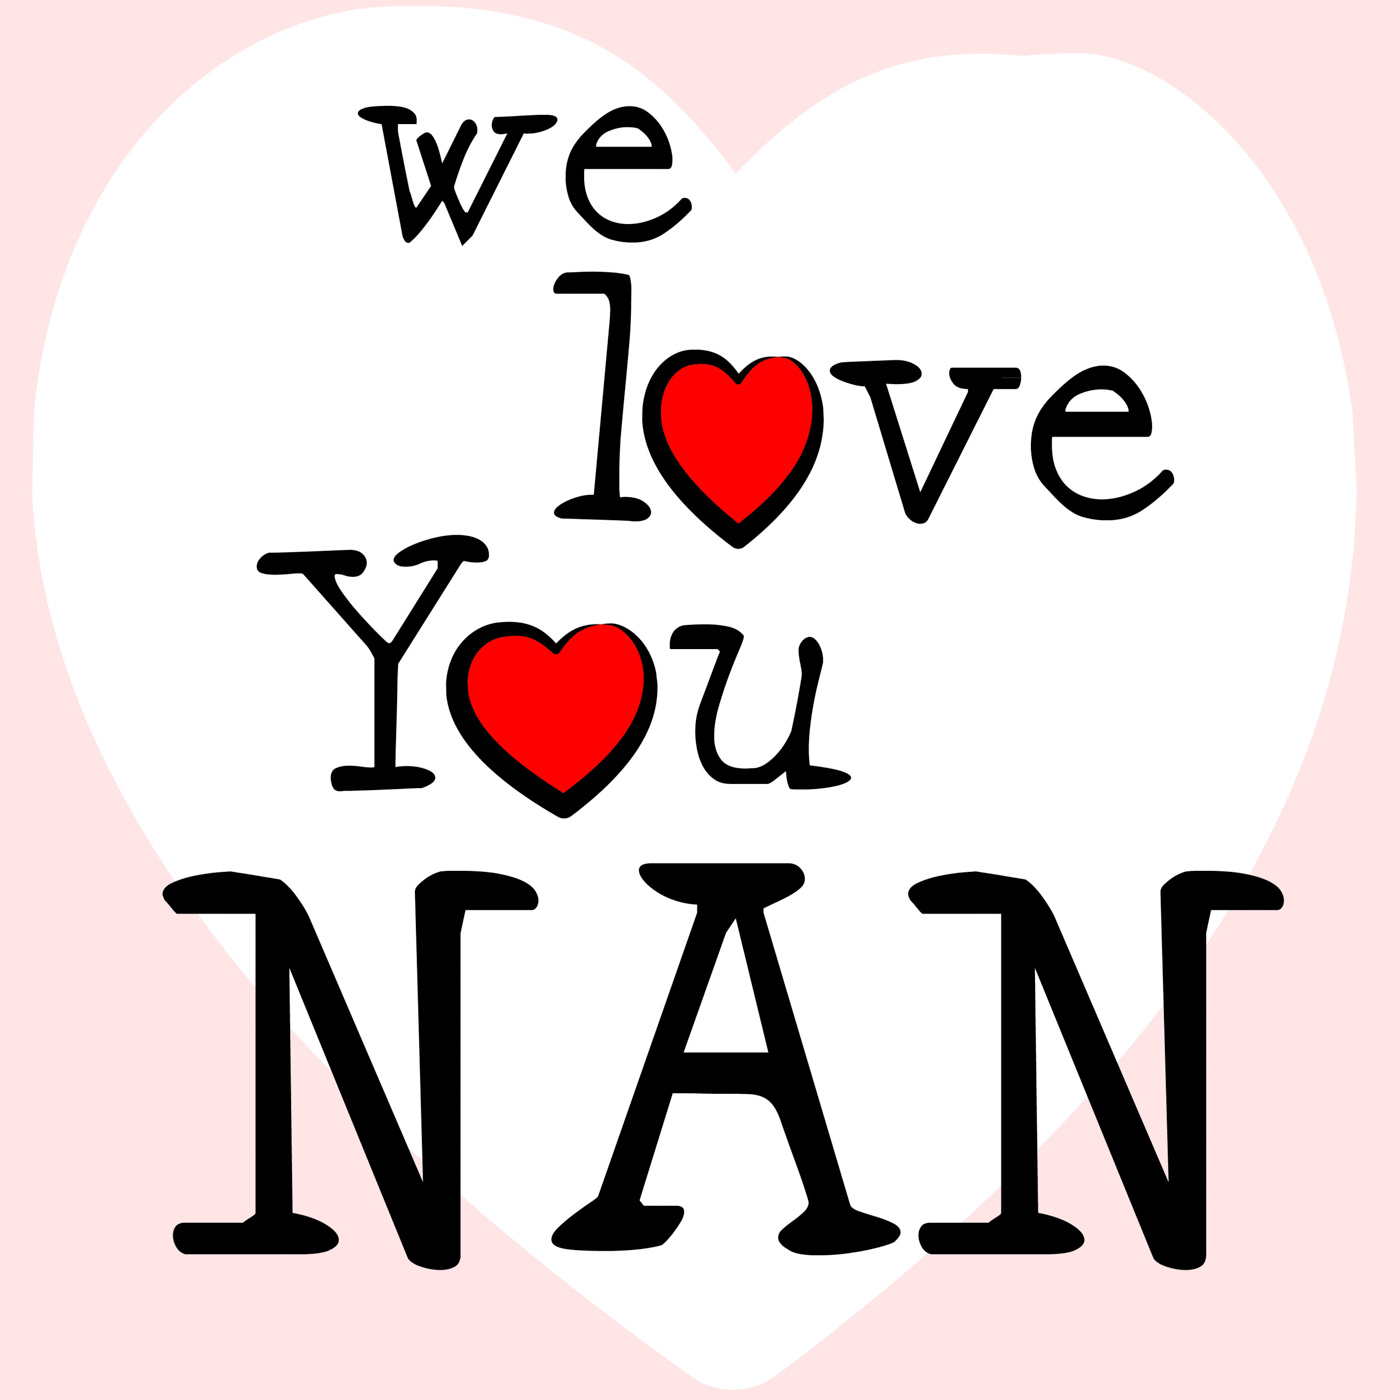 We love nan shows dating devotion and gran photo